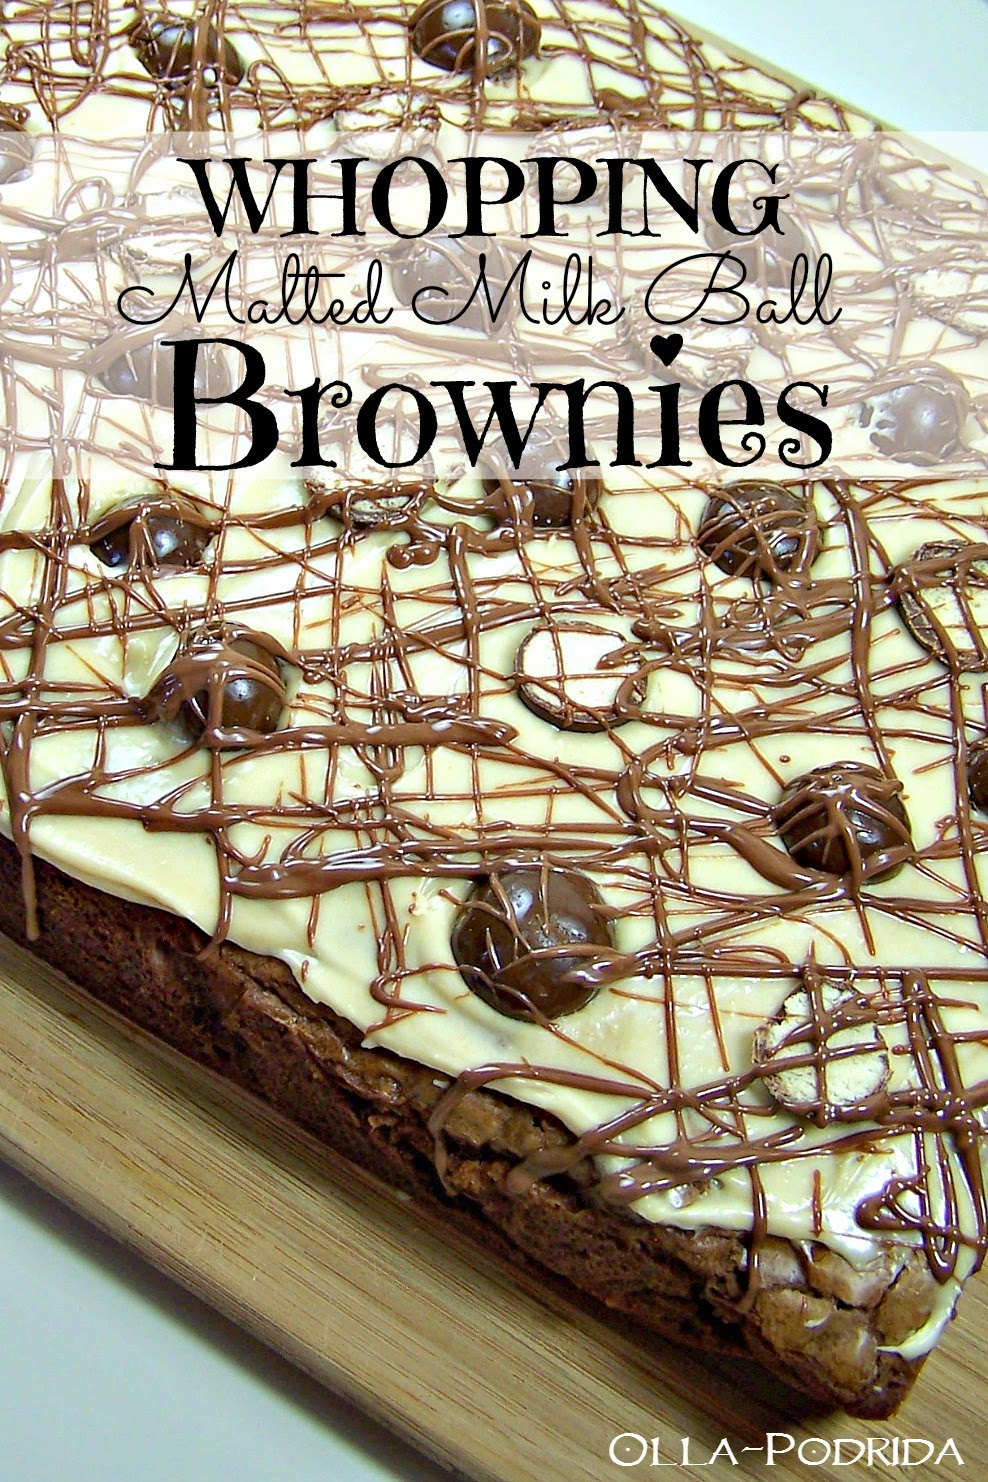 whopping malted milk ball brownies